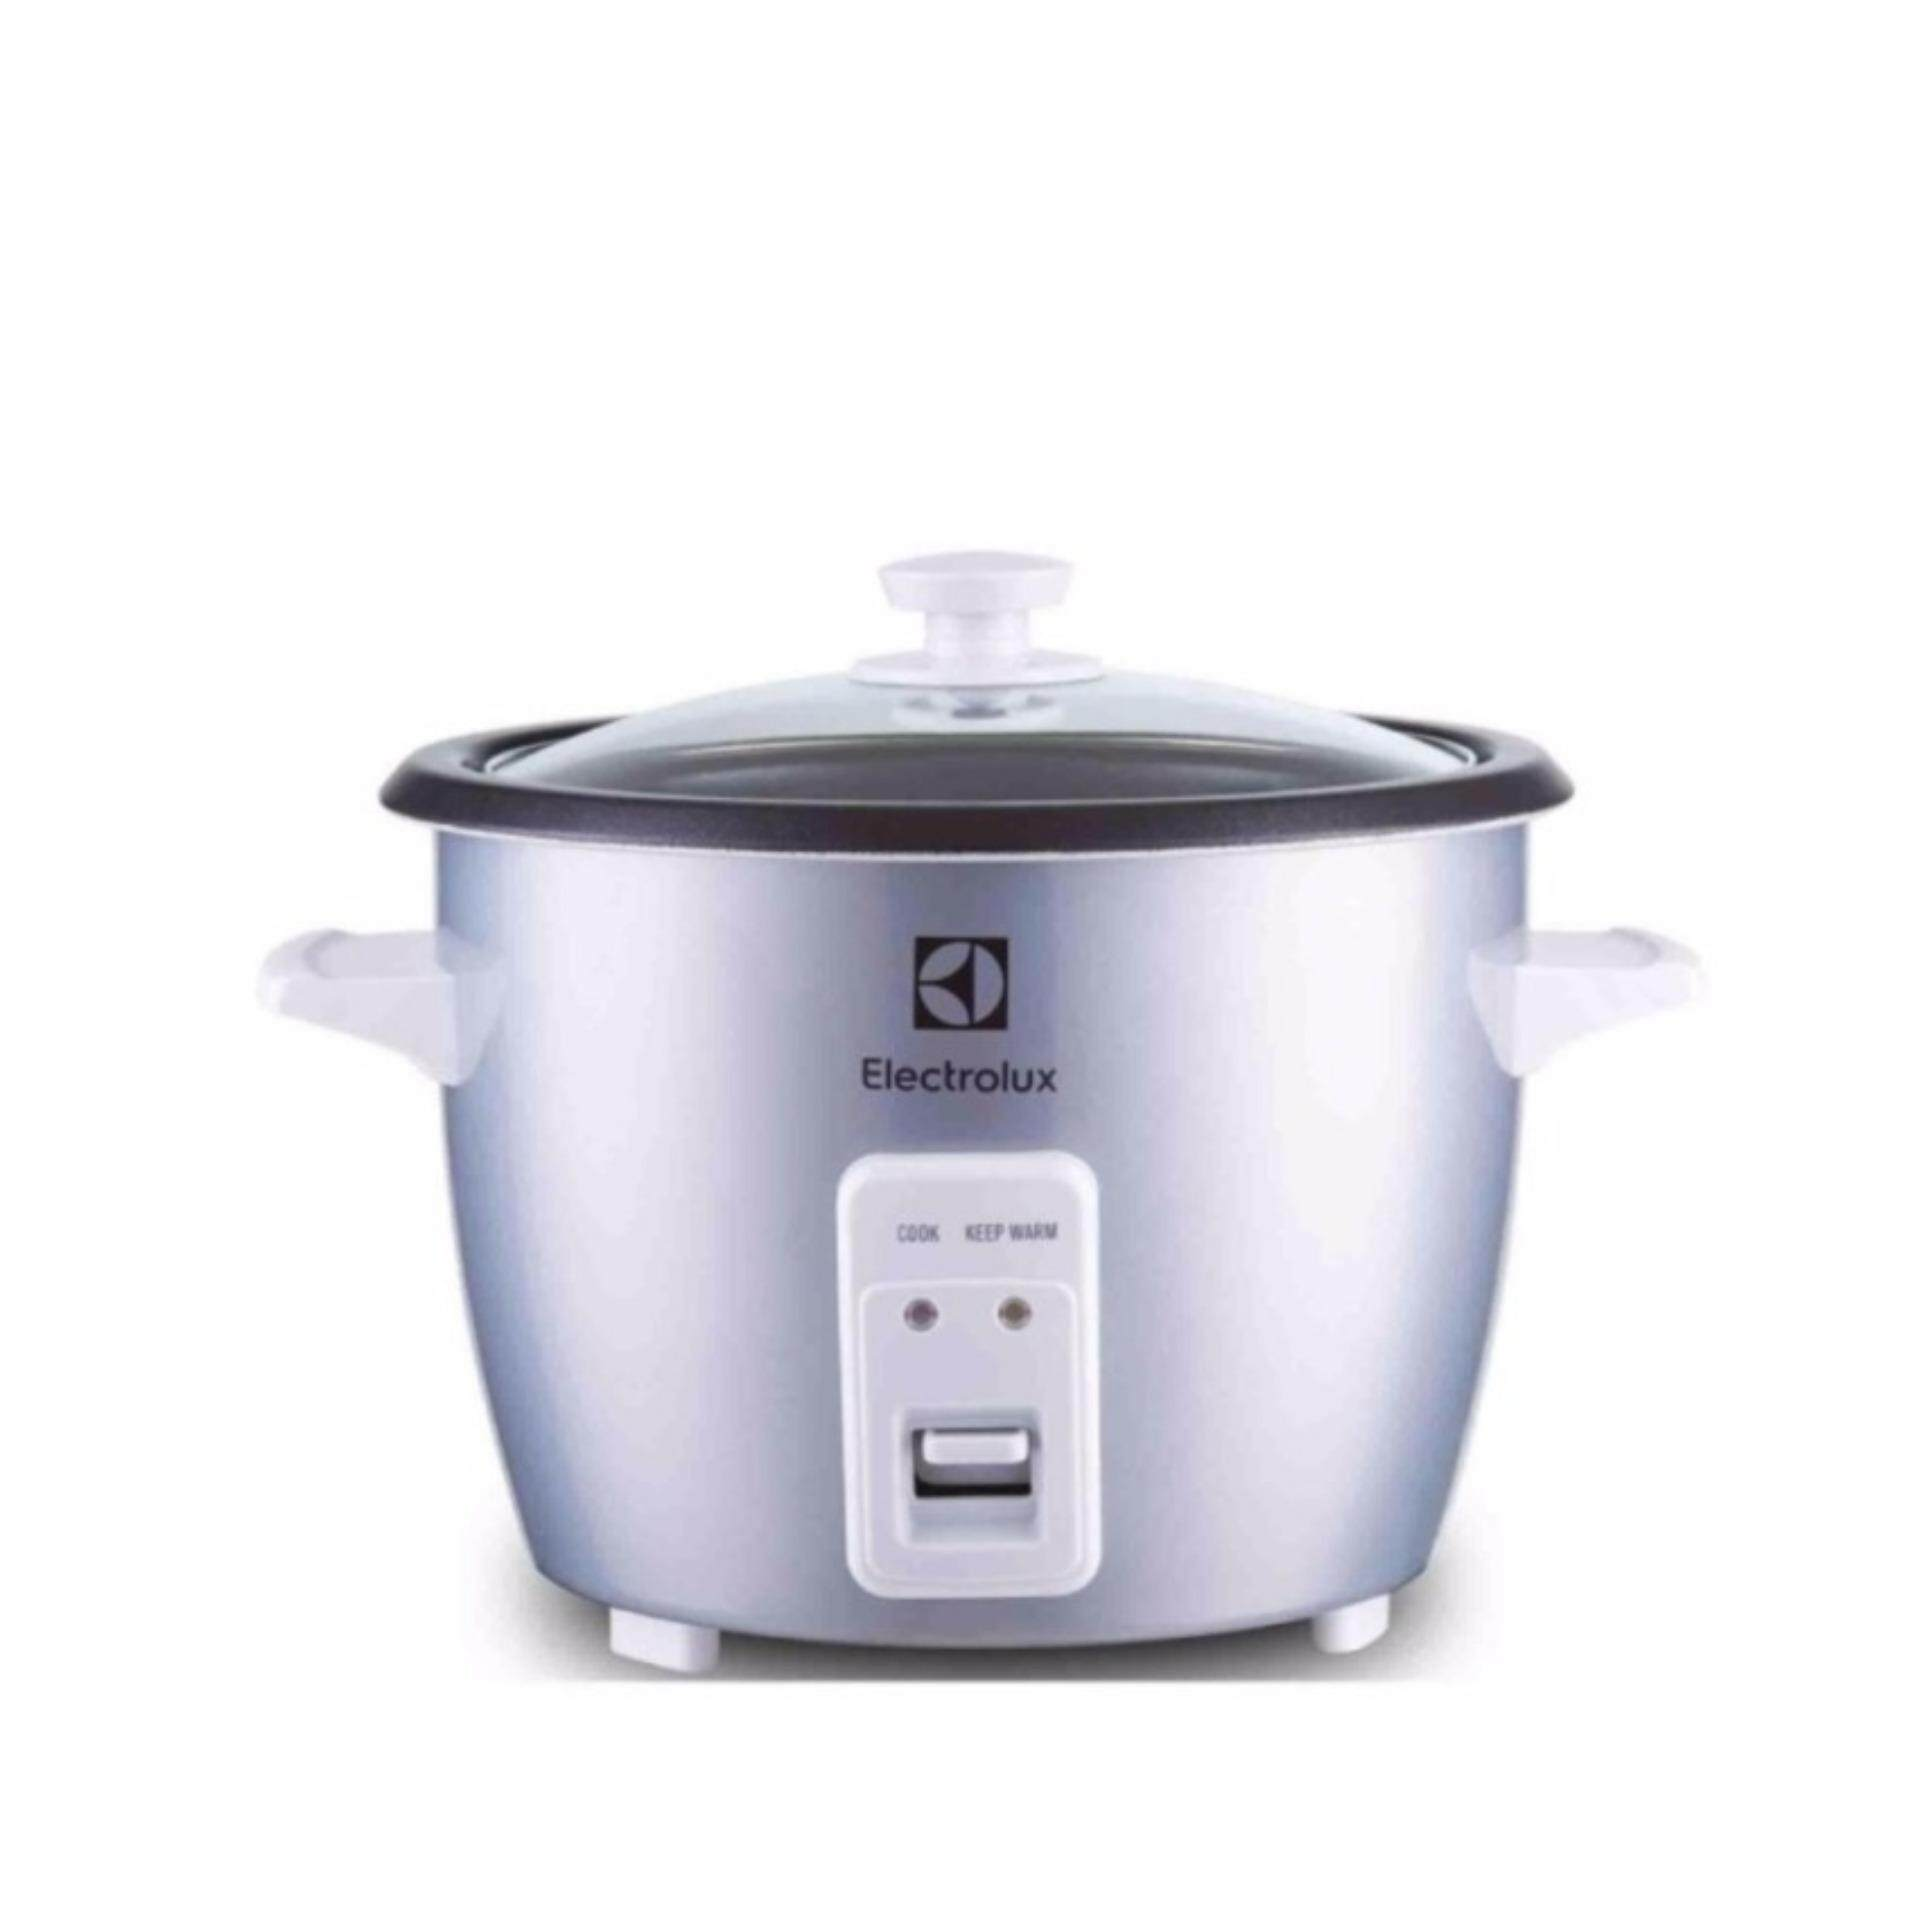 ELECTROLUX RICE COOKER ERC1300